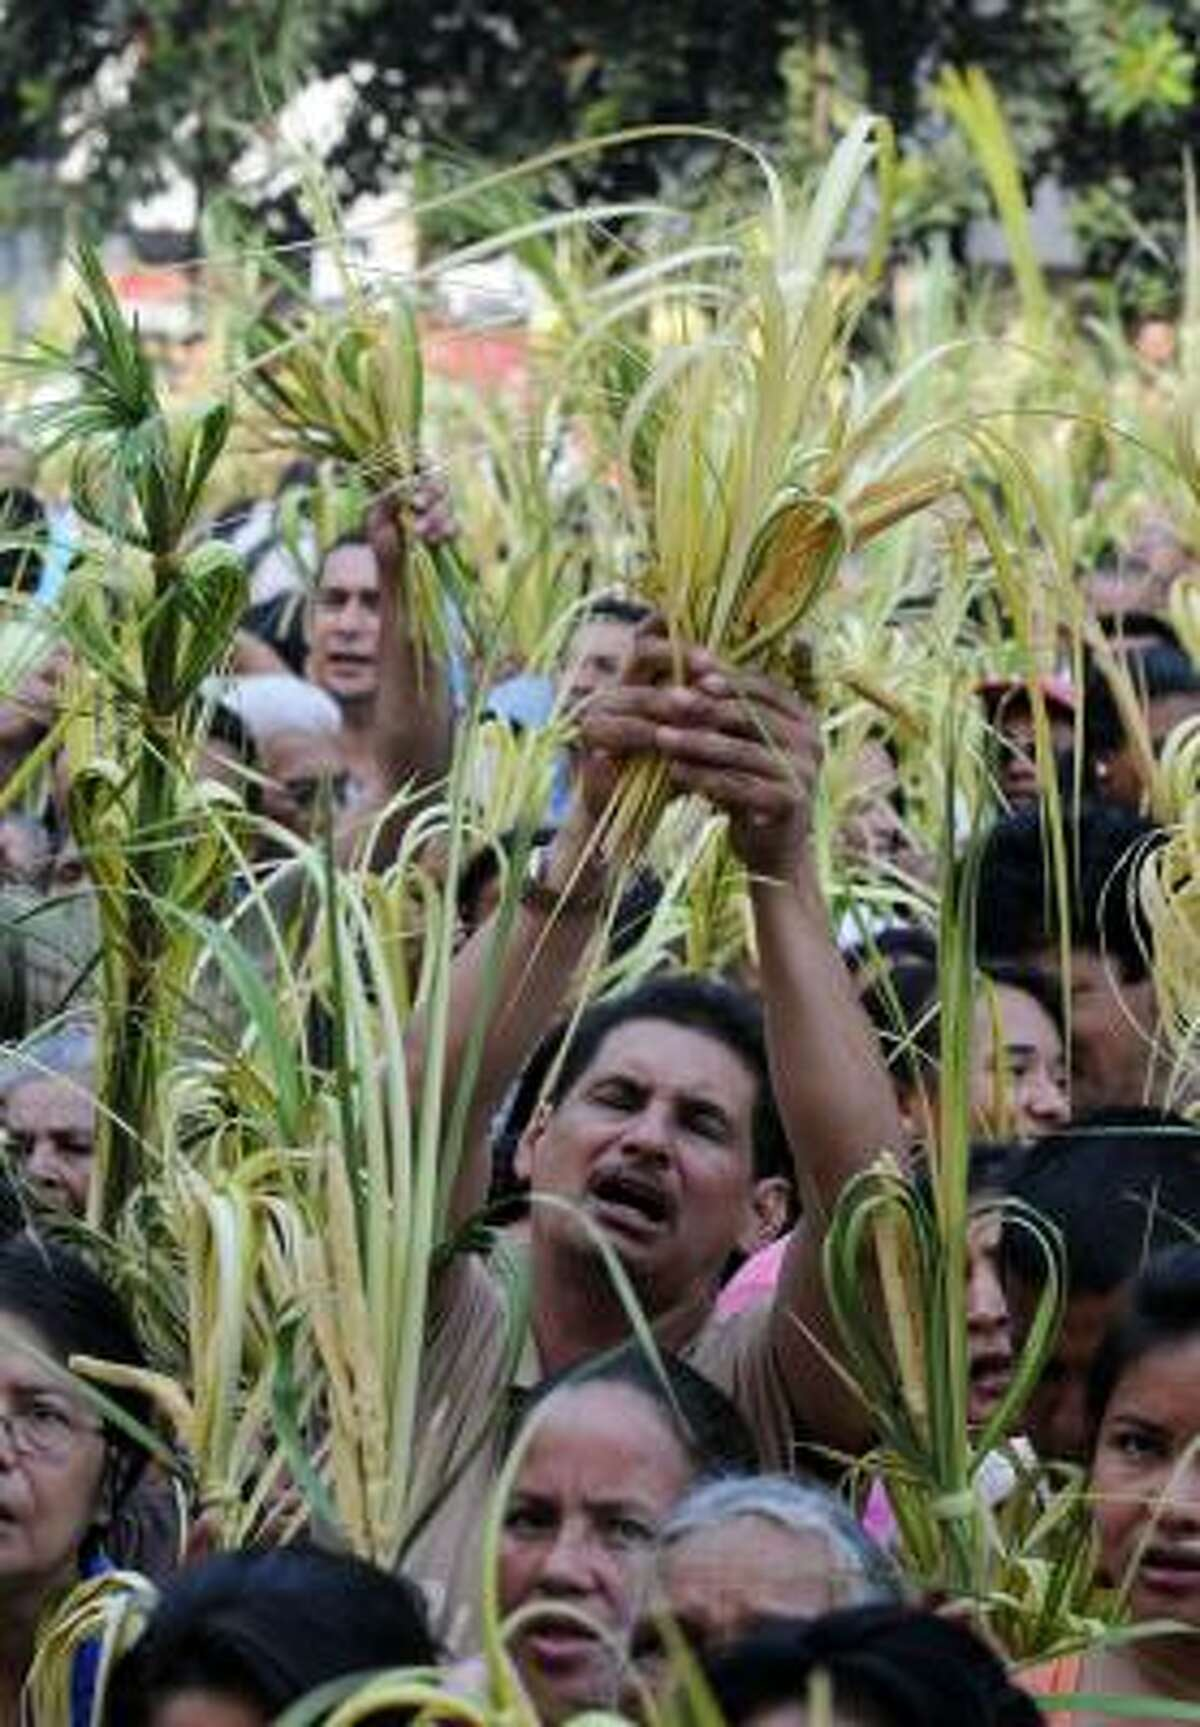 Christian worshippers take part in the traditional Palm Sunday procession in Tegucigalpa, Honduras. Palm Sunday marks the sixth and last Sunday of the Christian Holy month of Lent and the beginning of Holy Week.